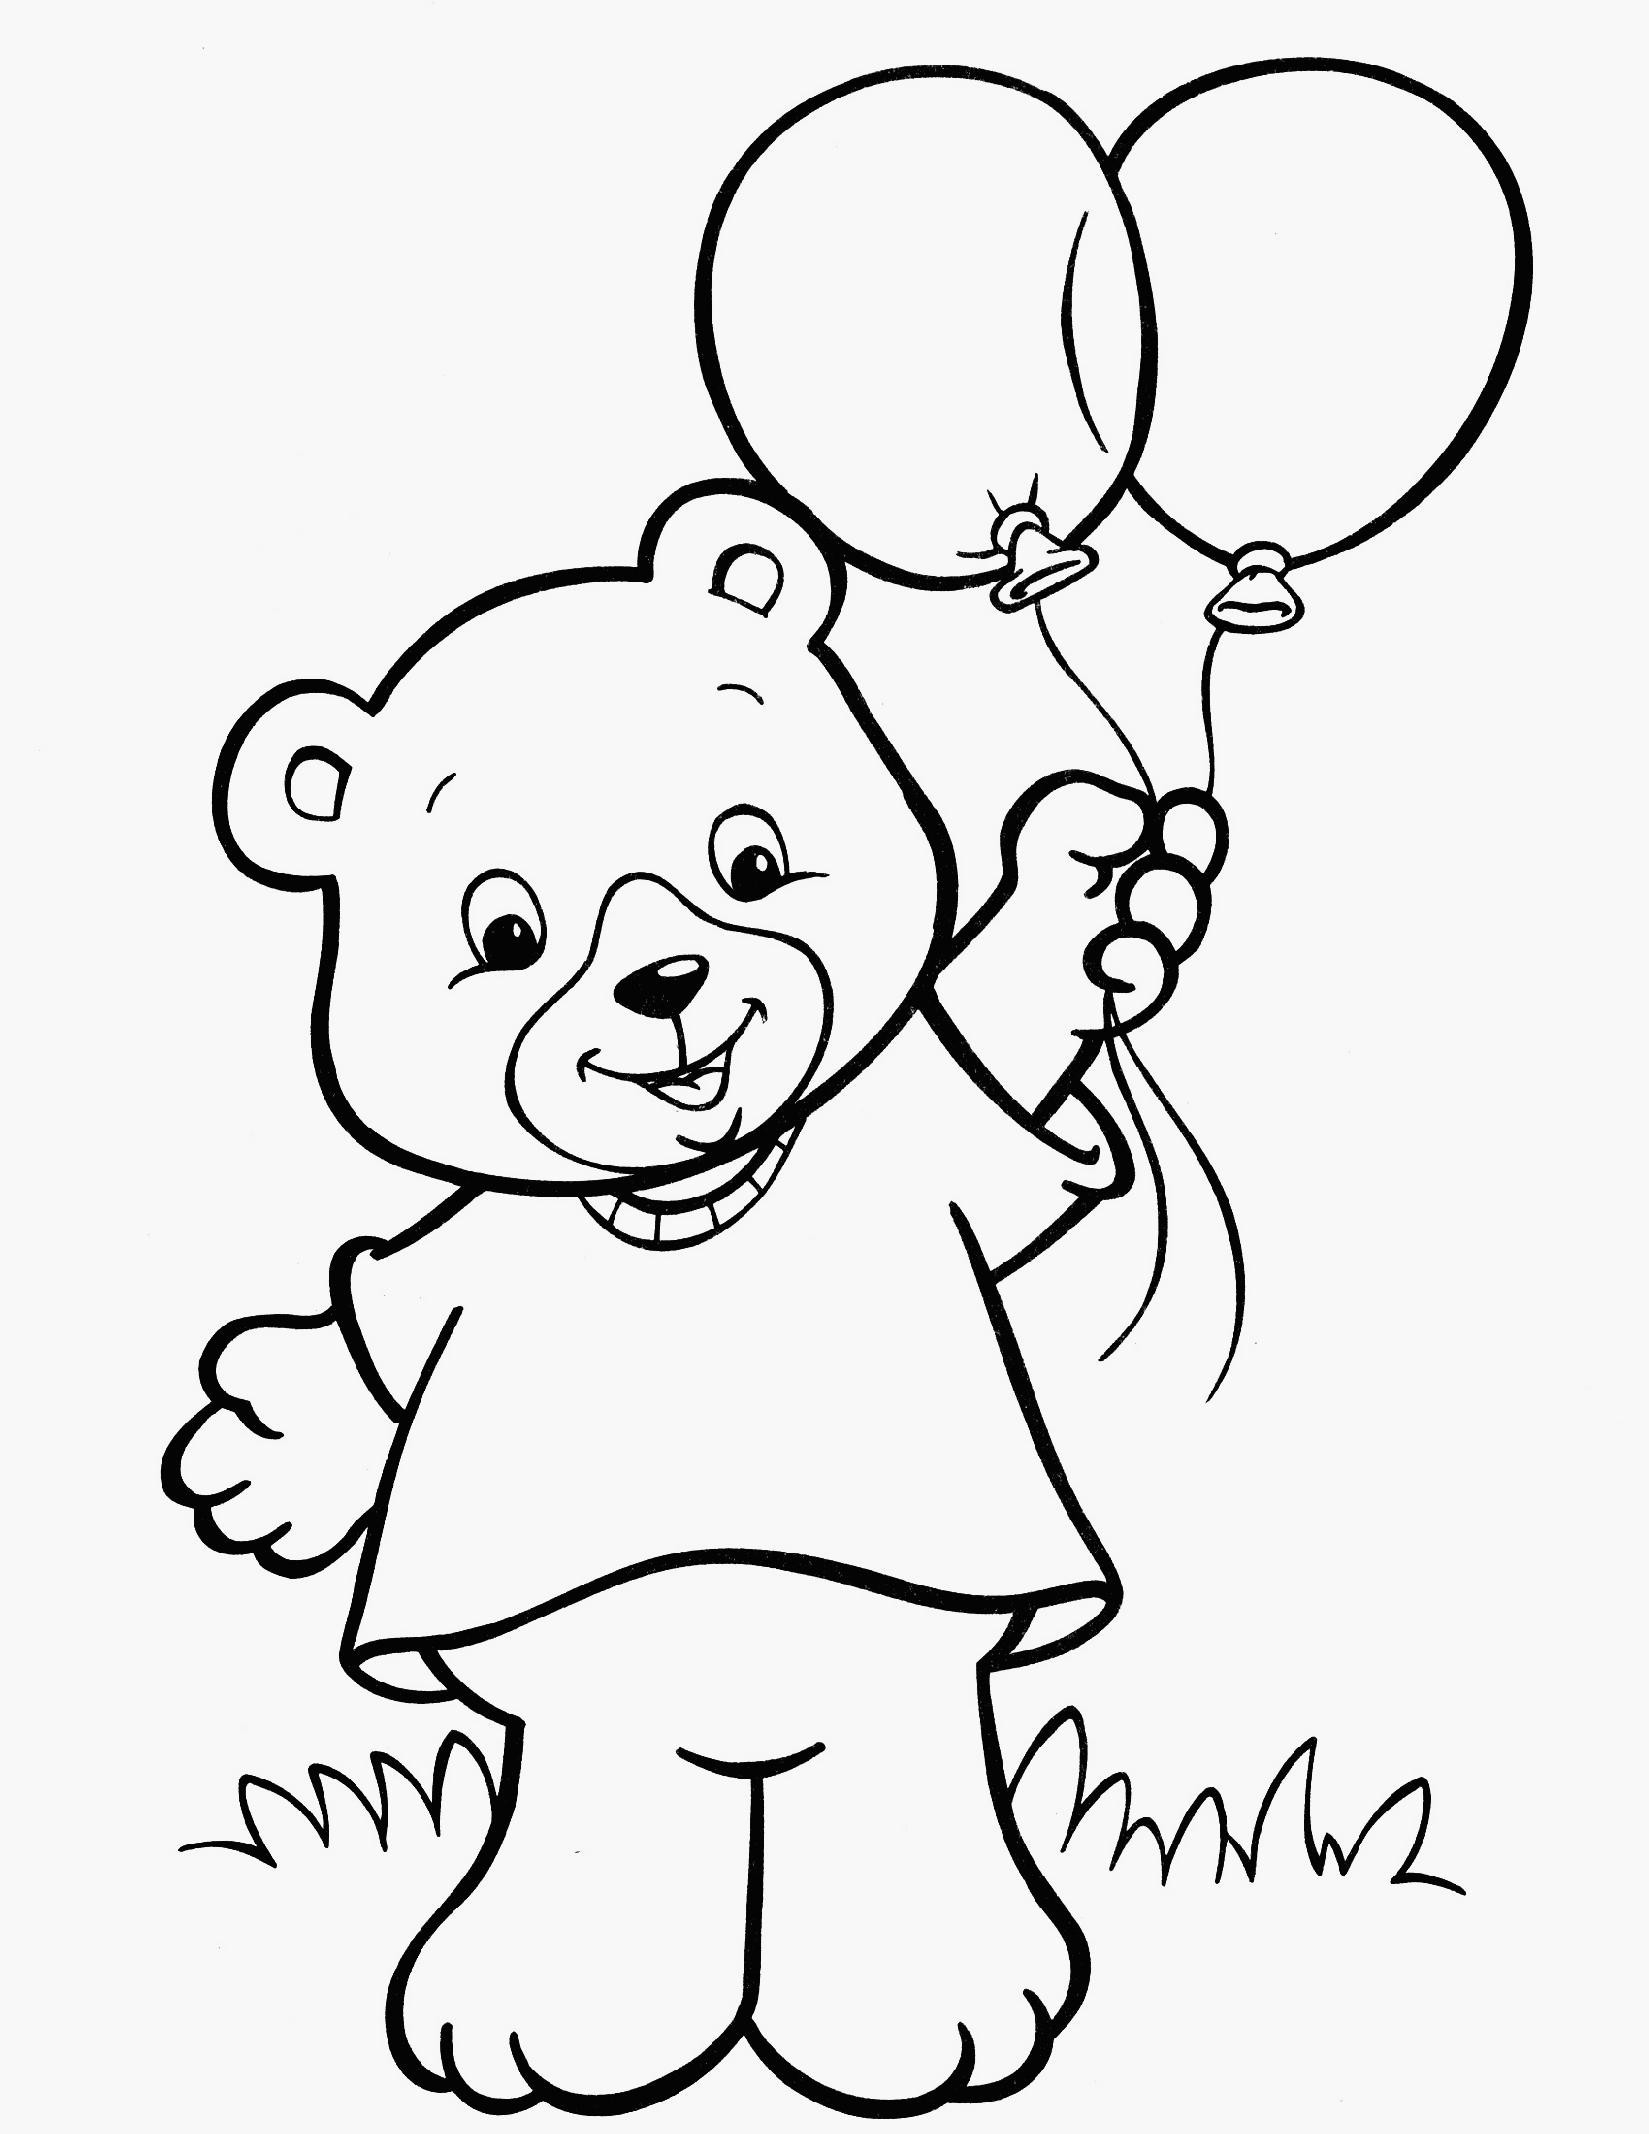 Activities For 3 Year Olds Drawing at GetDrawings | Free ...